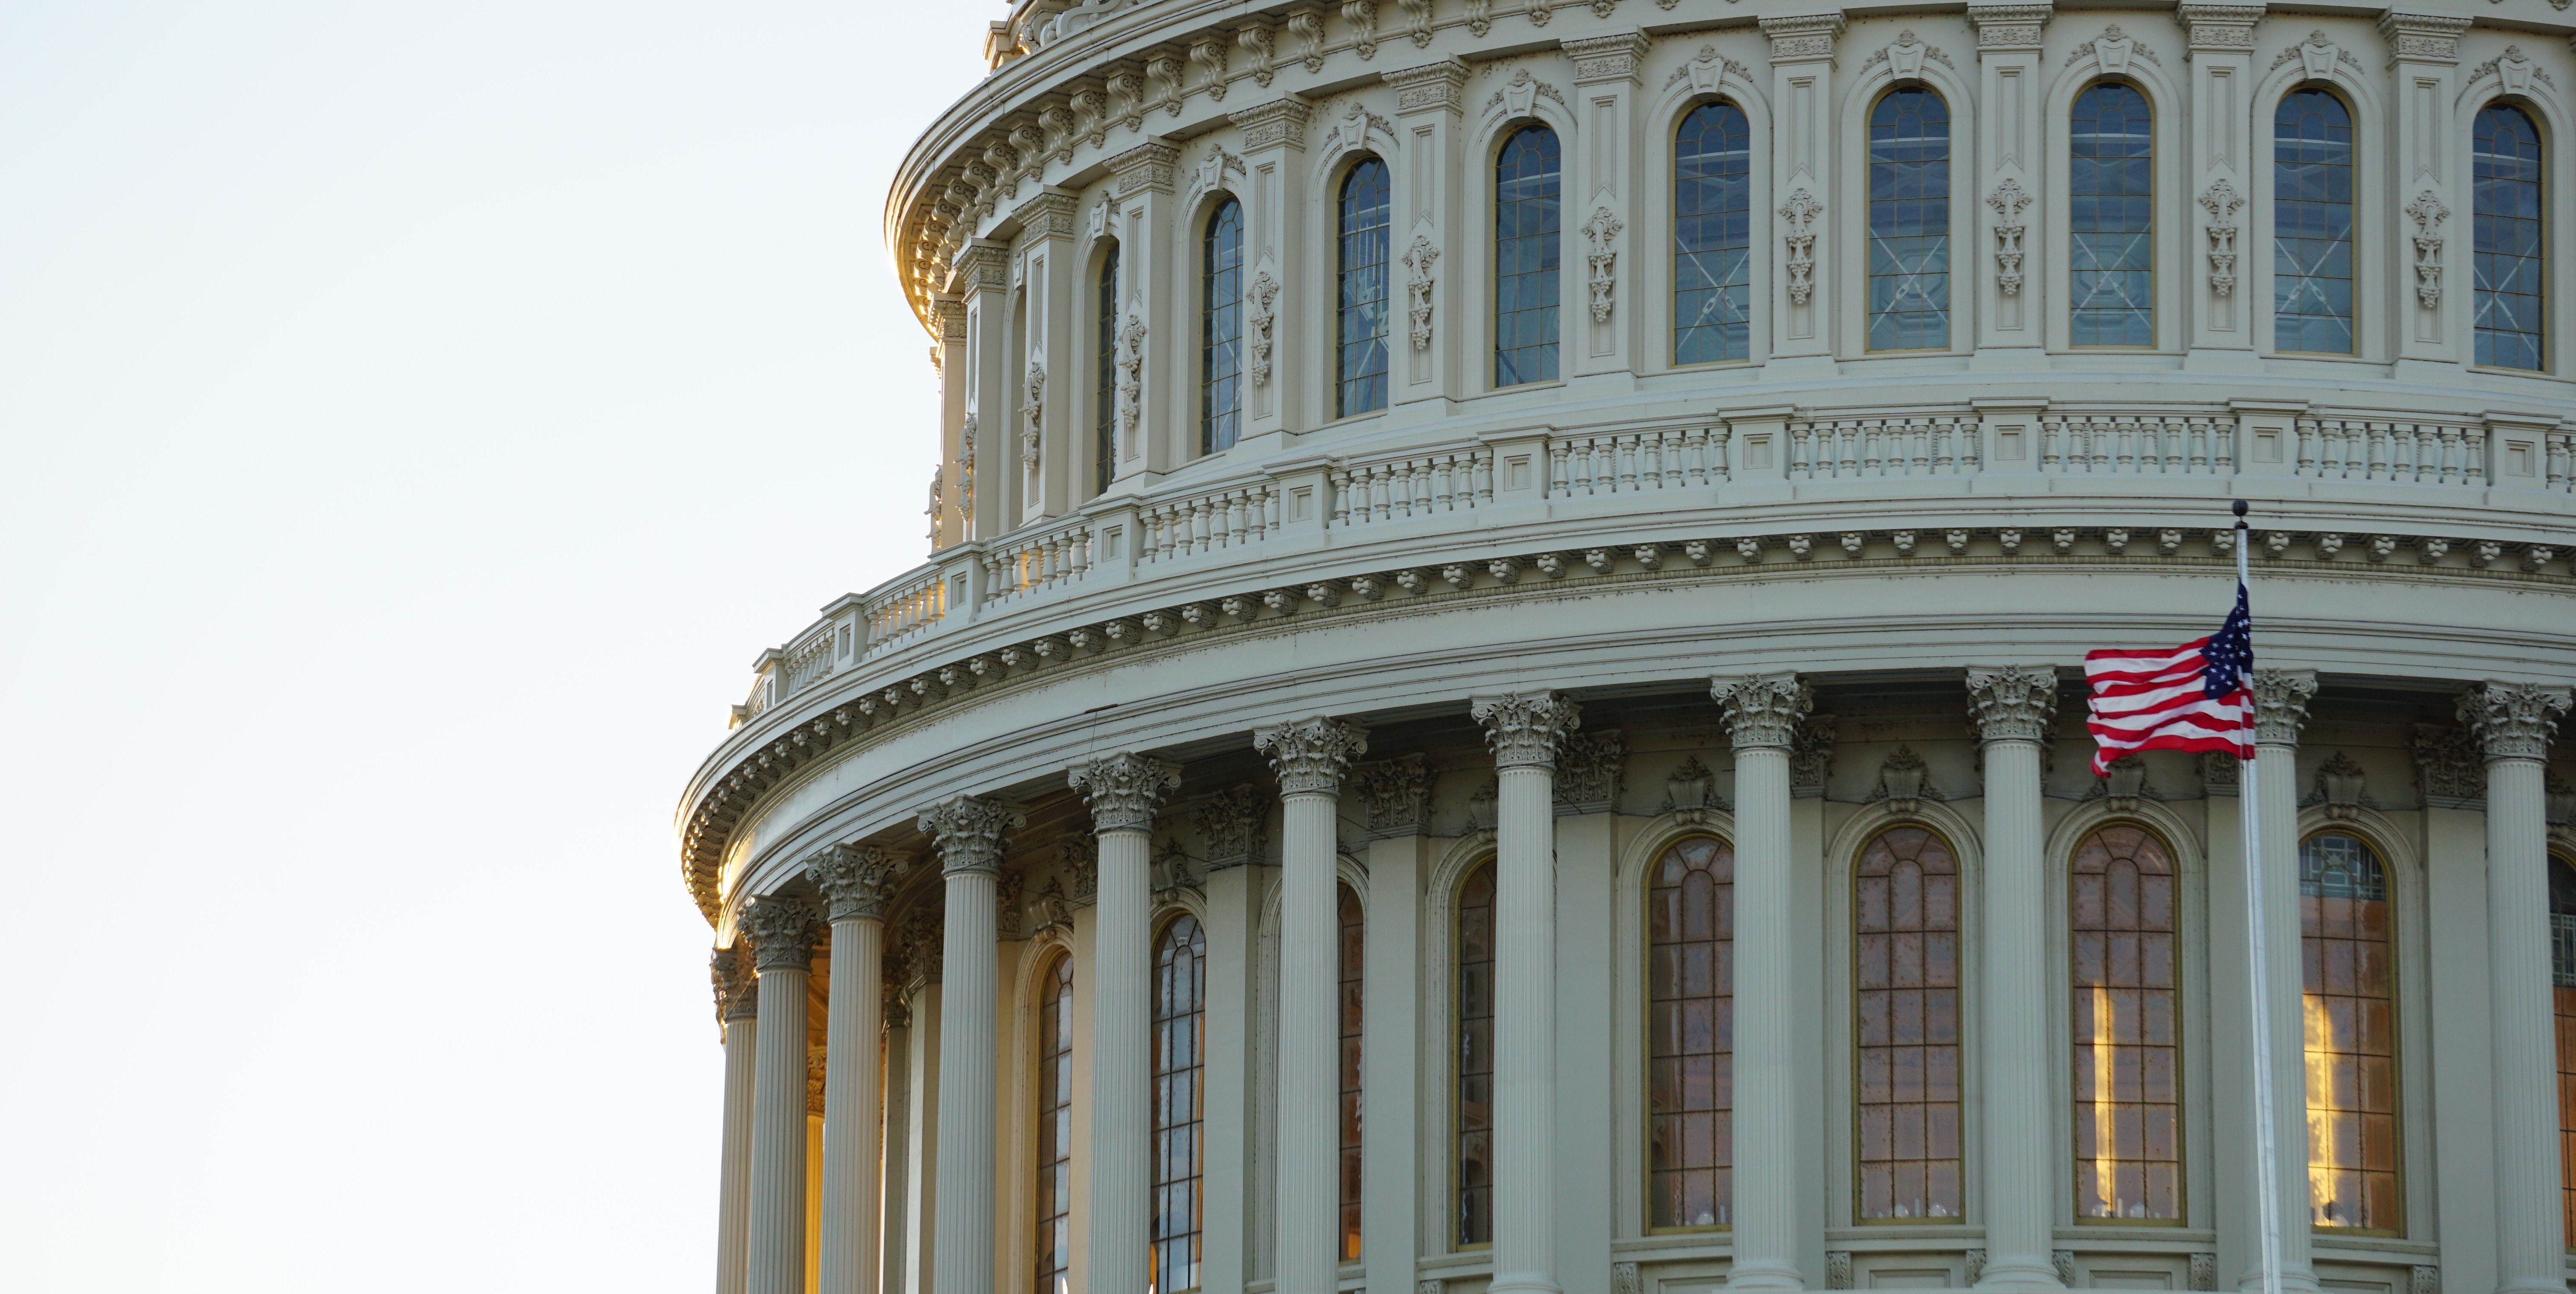 A close up section of the the U.S. Capitol building dome with a blue sky in the background.